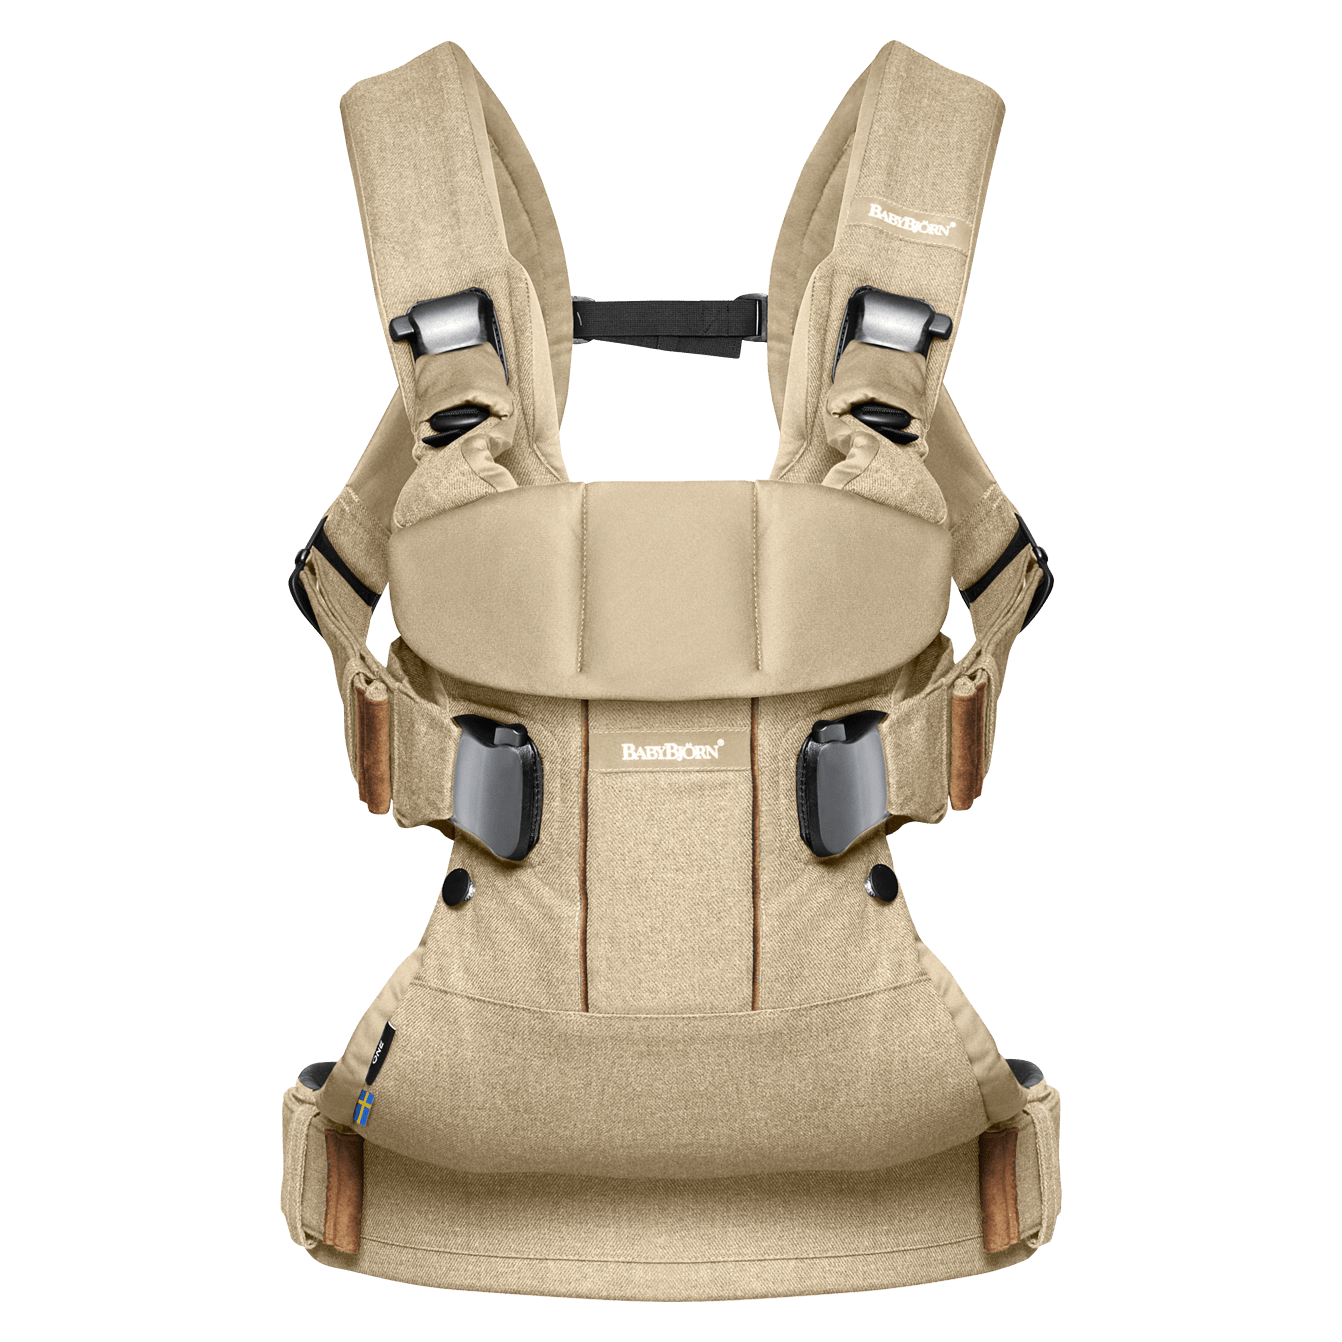 BABYBJÖRN Baby Carrier One in birchwood beige cotton mix, an ergonomic baby carrier perfect for newborn up to 3 years.